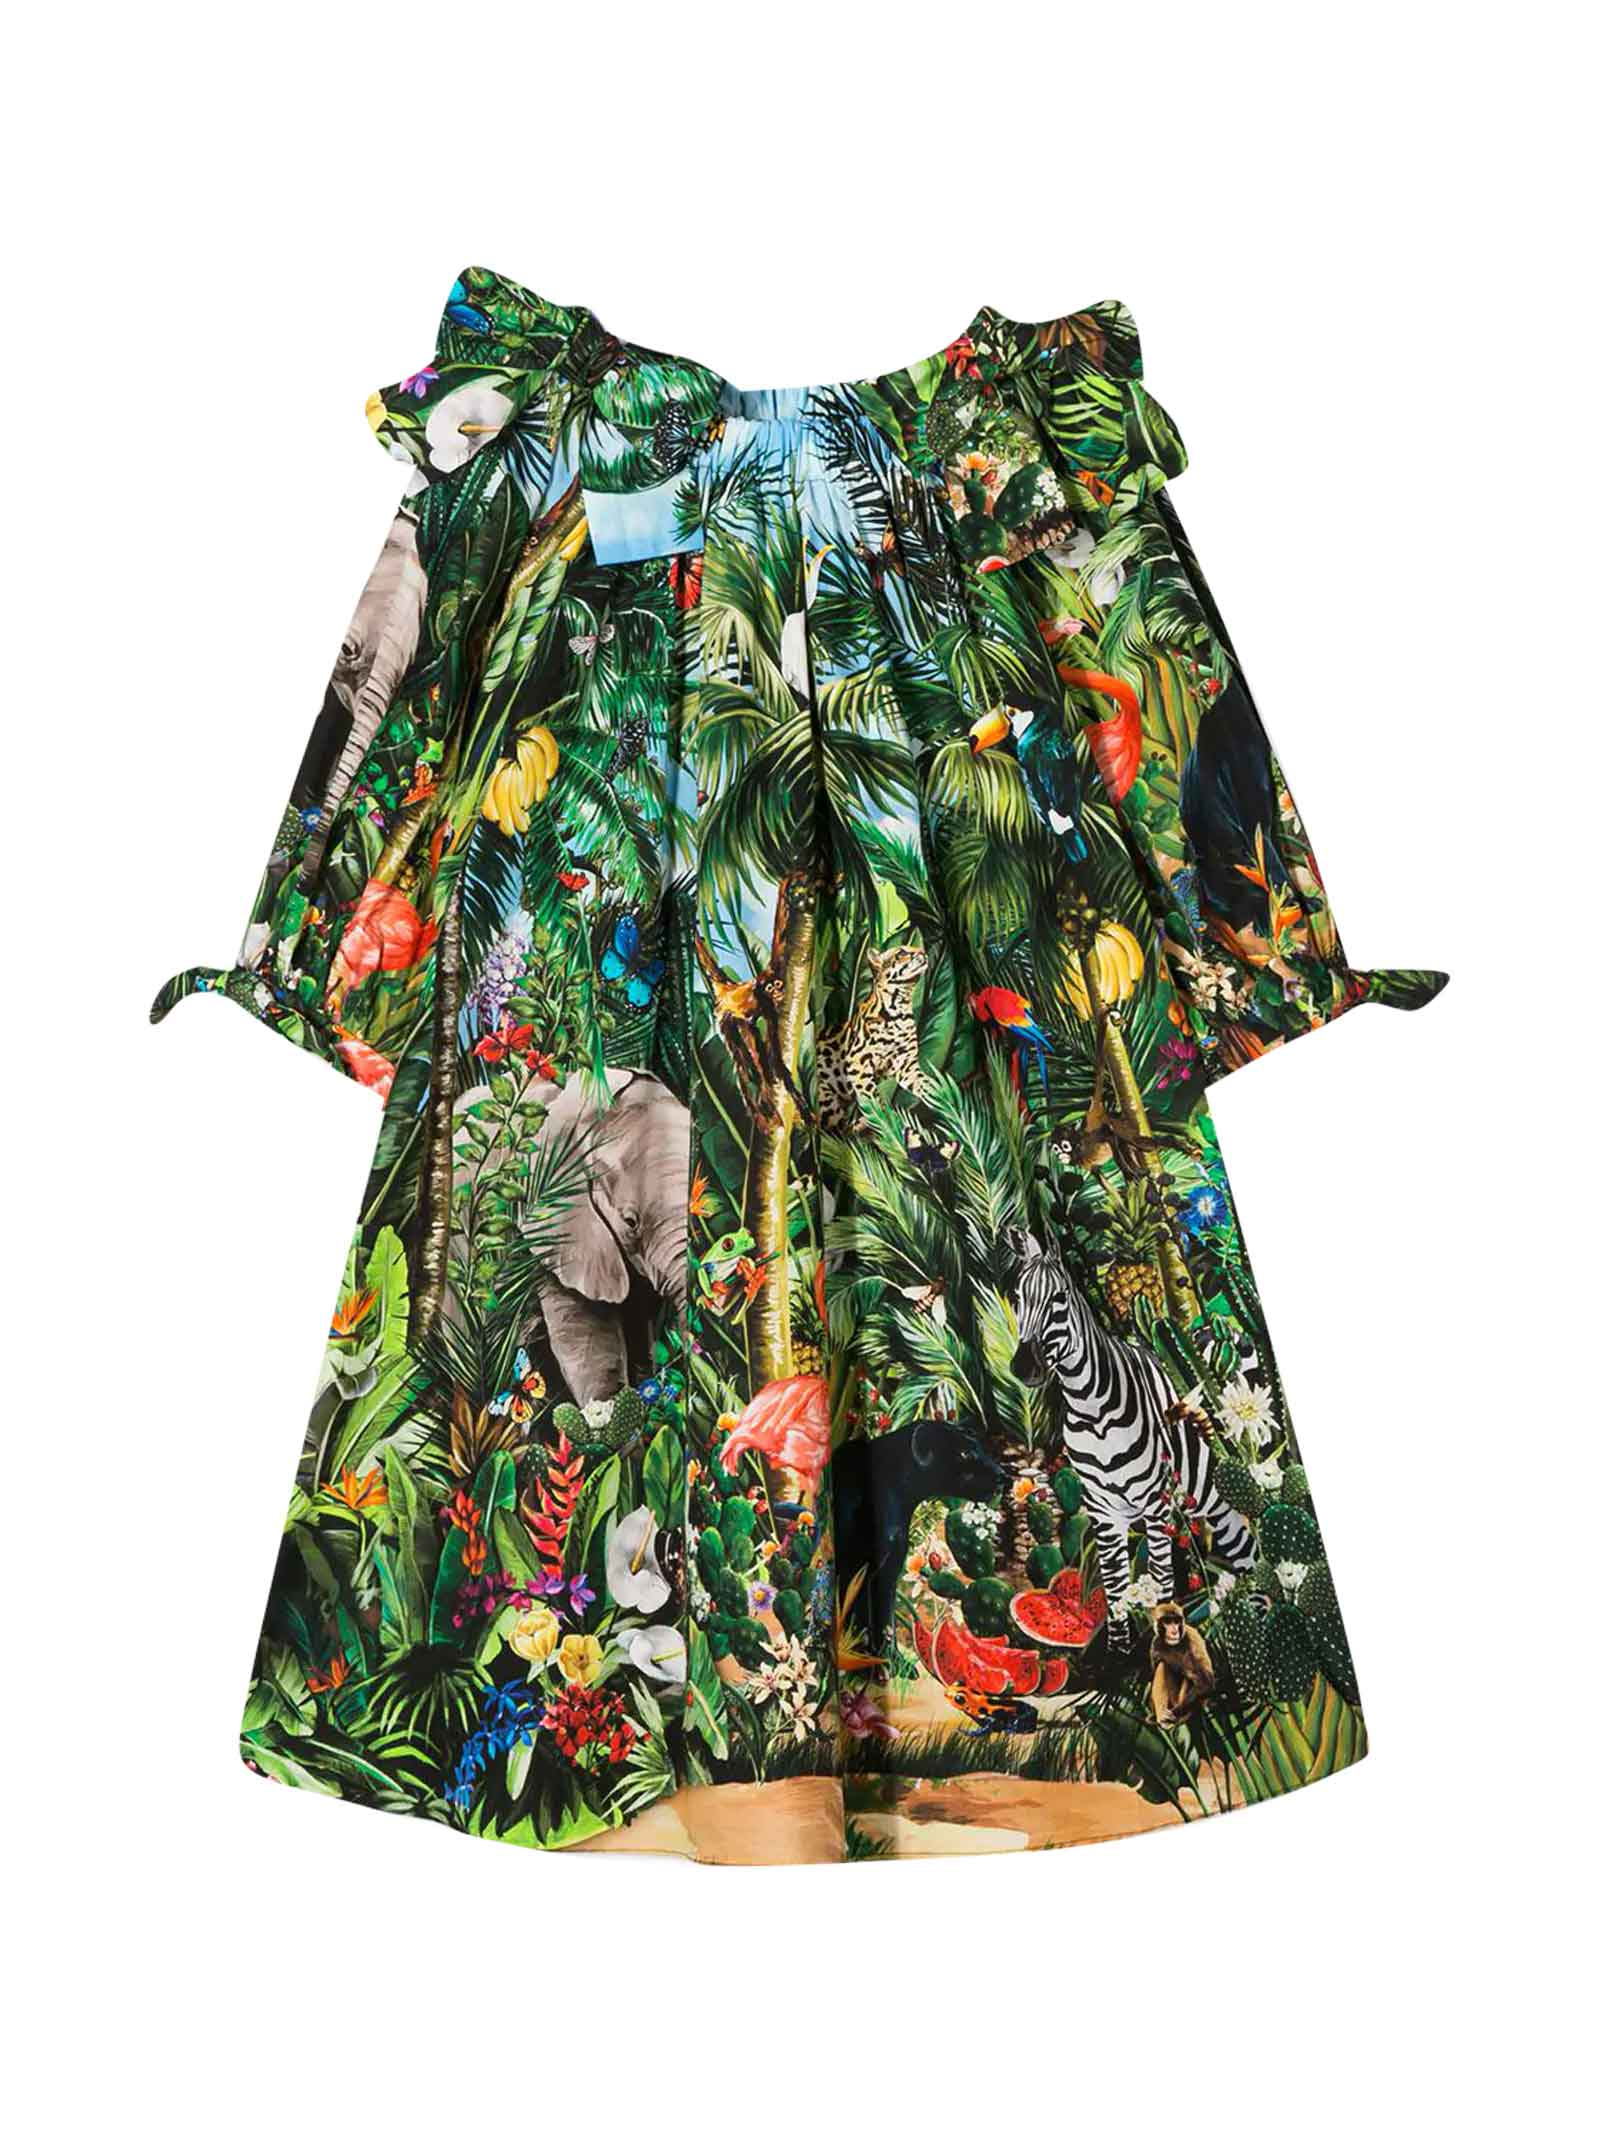 Buy Dolce & Gabbana Girl Patterned Dress online, shop Dolce & Gabbana with free shipping